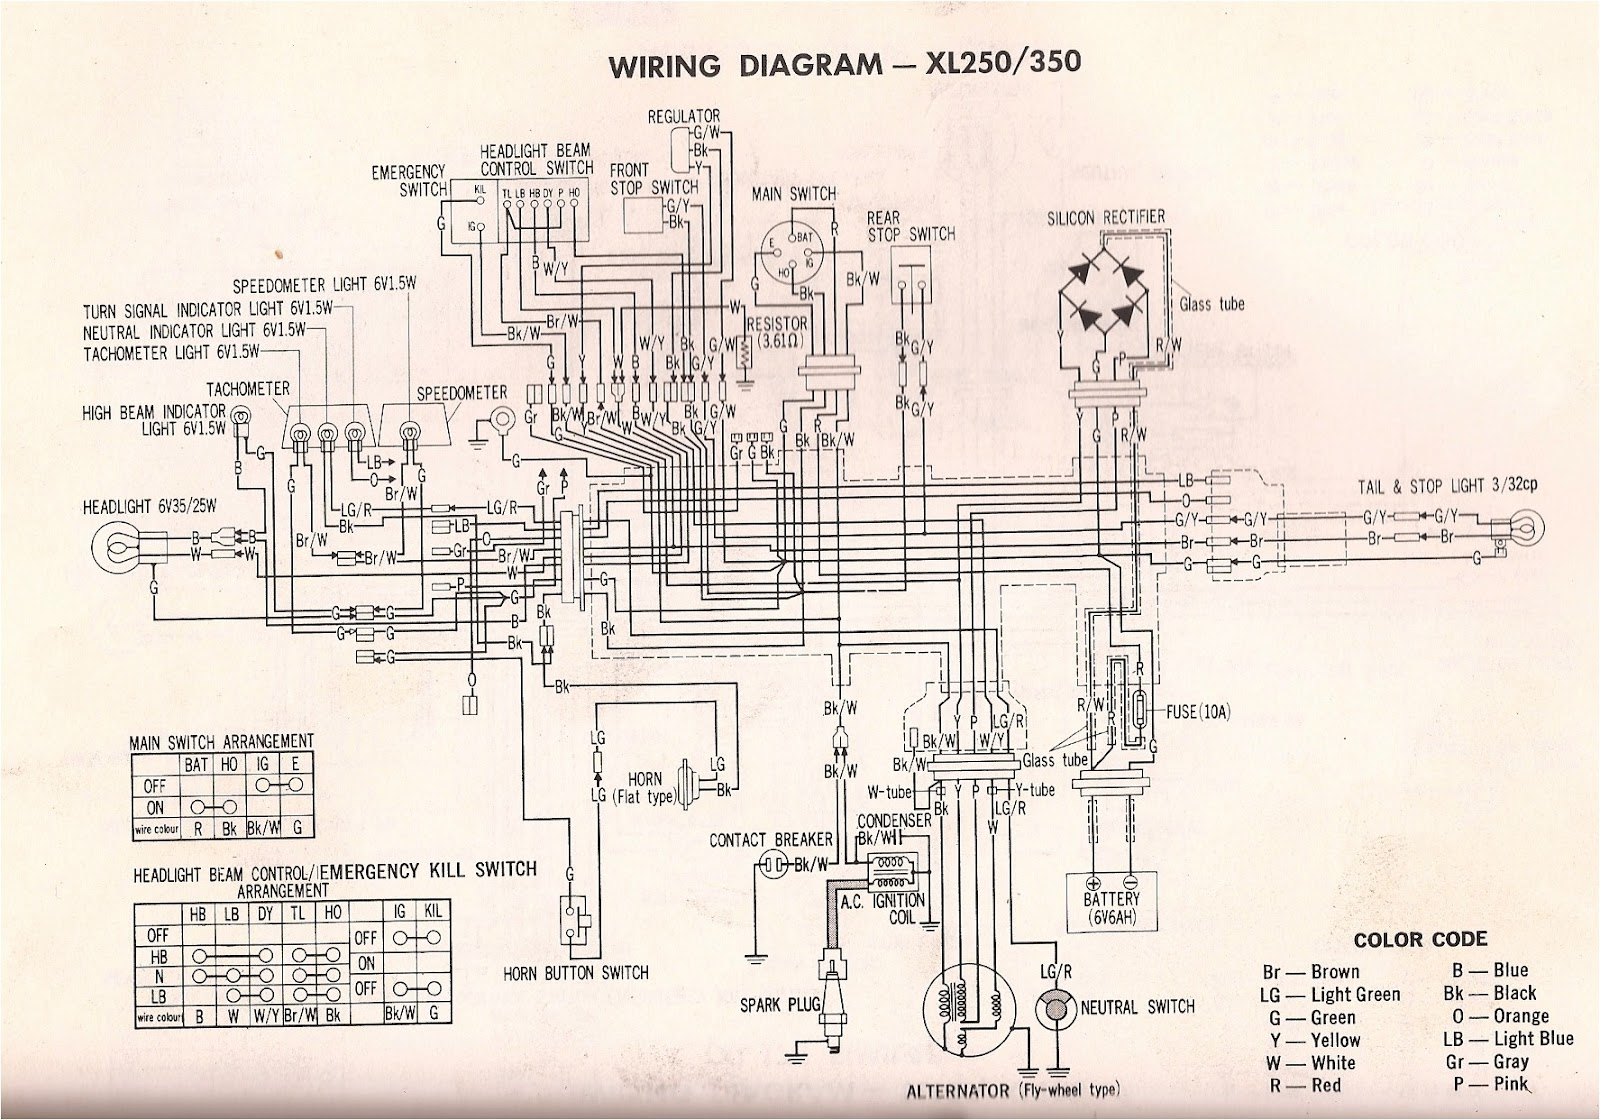 XL350+Wiring+diagram+S r4l xl350 wiring diagram (and xl250) 1974 honda cb550 wiring diagram at virtualis.co